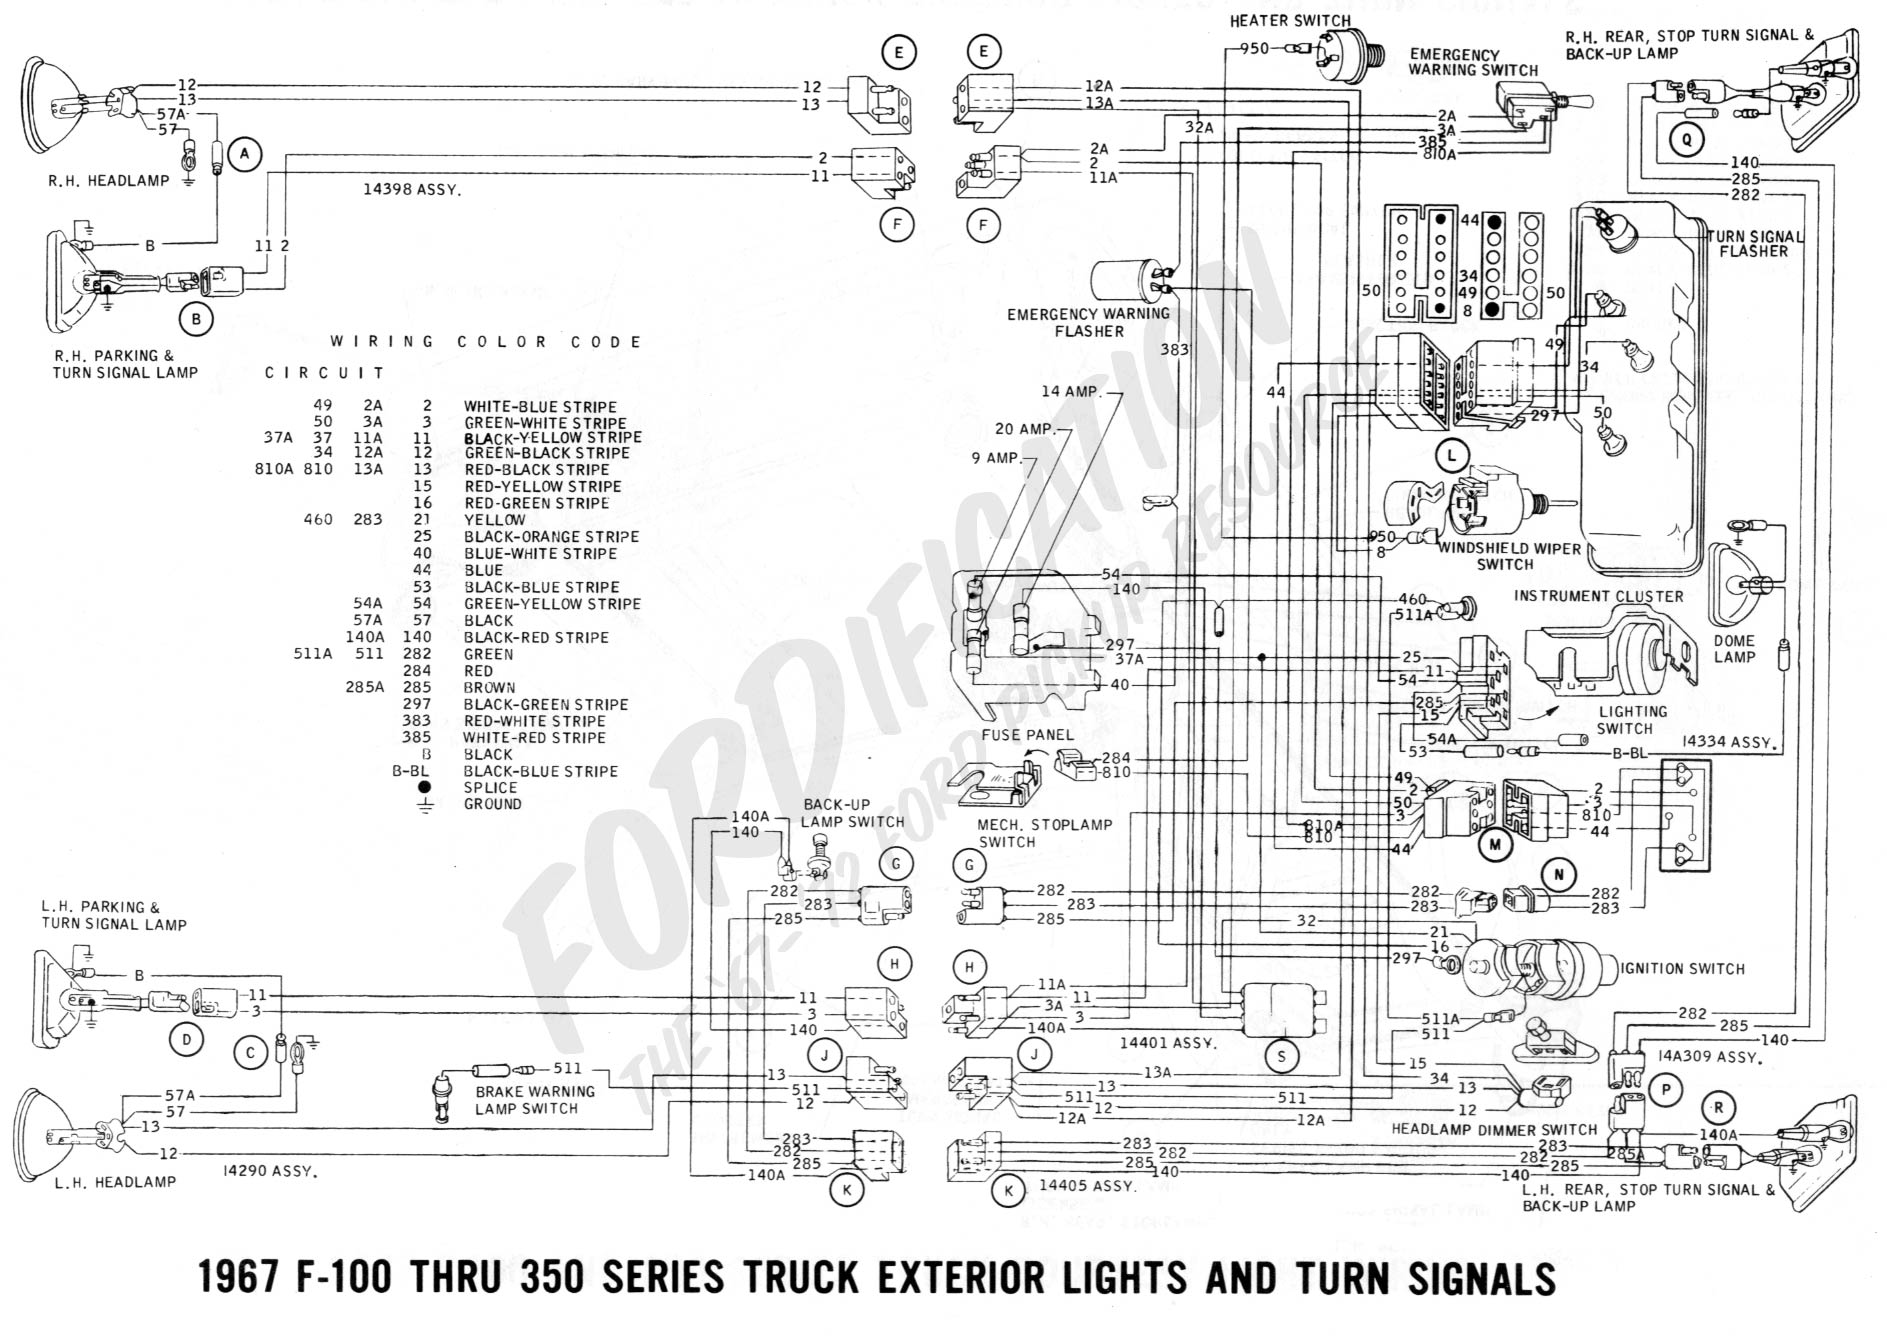 3ec80 Location High Mounted Stop Light Relay Switch Brake Lights also 2000 Ford F 250 Transmission Wiring Diagram furthermore Chevrolet Silverado Mk1 First Generation 1999 2007 Fuse Box Diagram as well 1986 Ford F700 Brake System Diagram further 2002 Porsche Boxster Fuse Diagram. on where is the turn signal relay on a 1997 chevy silverado